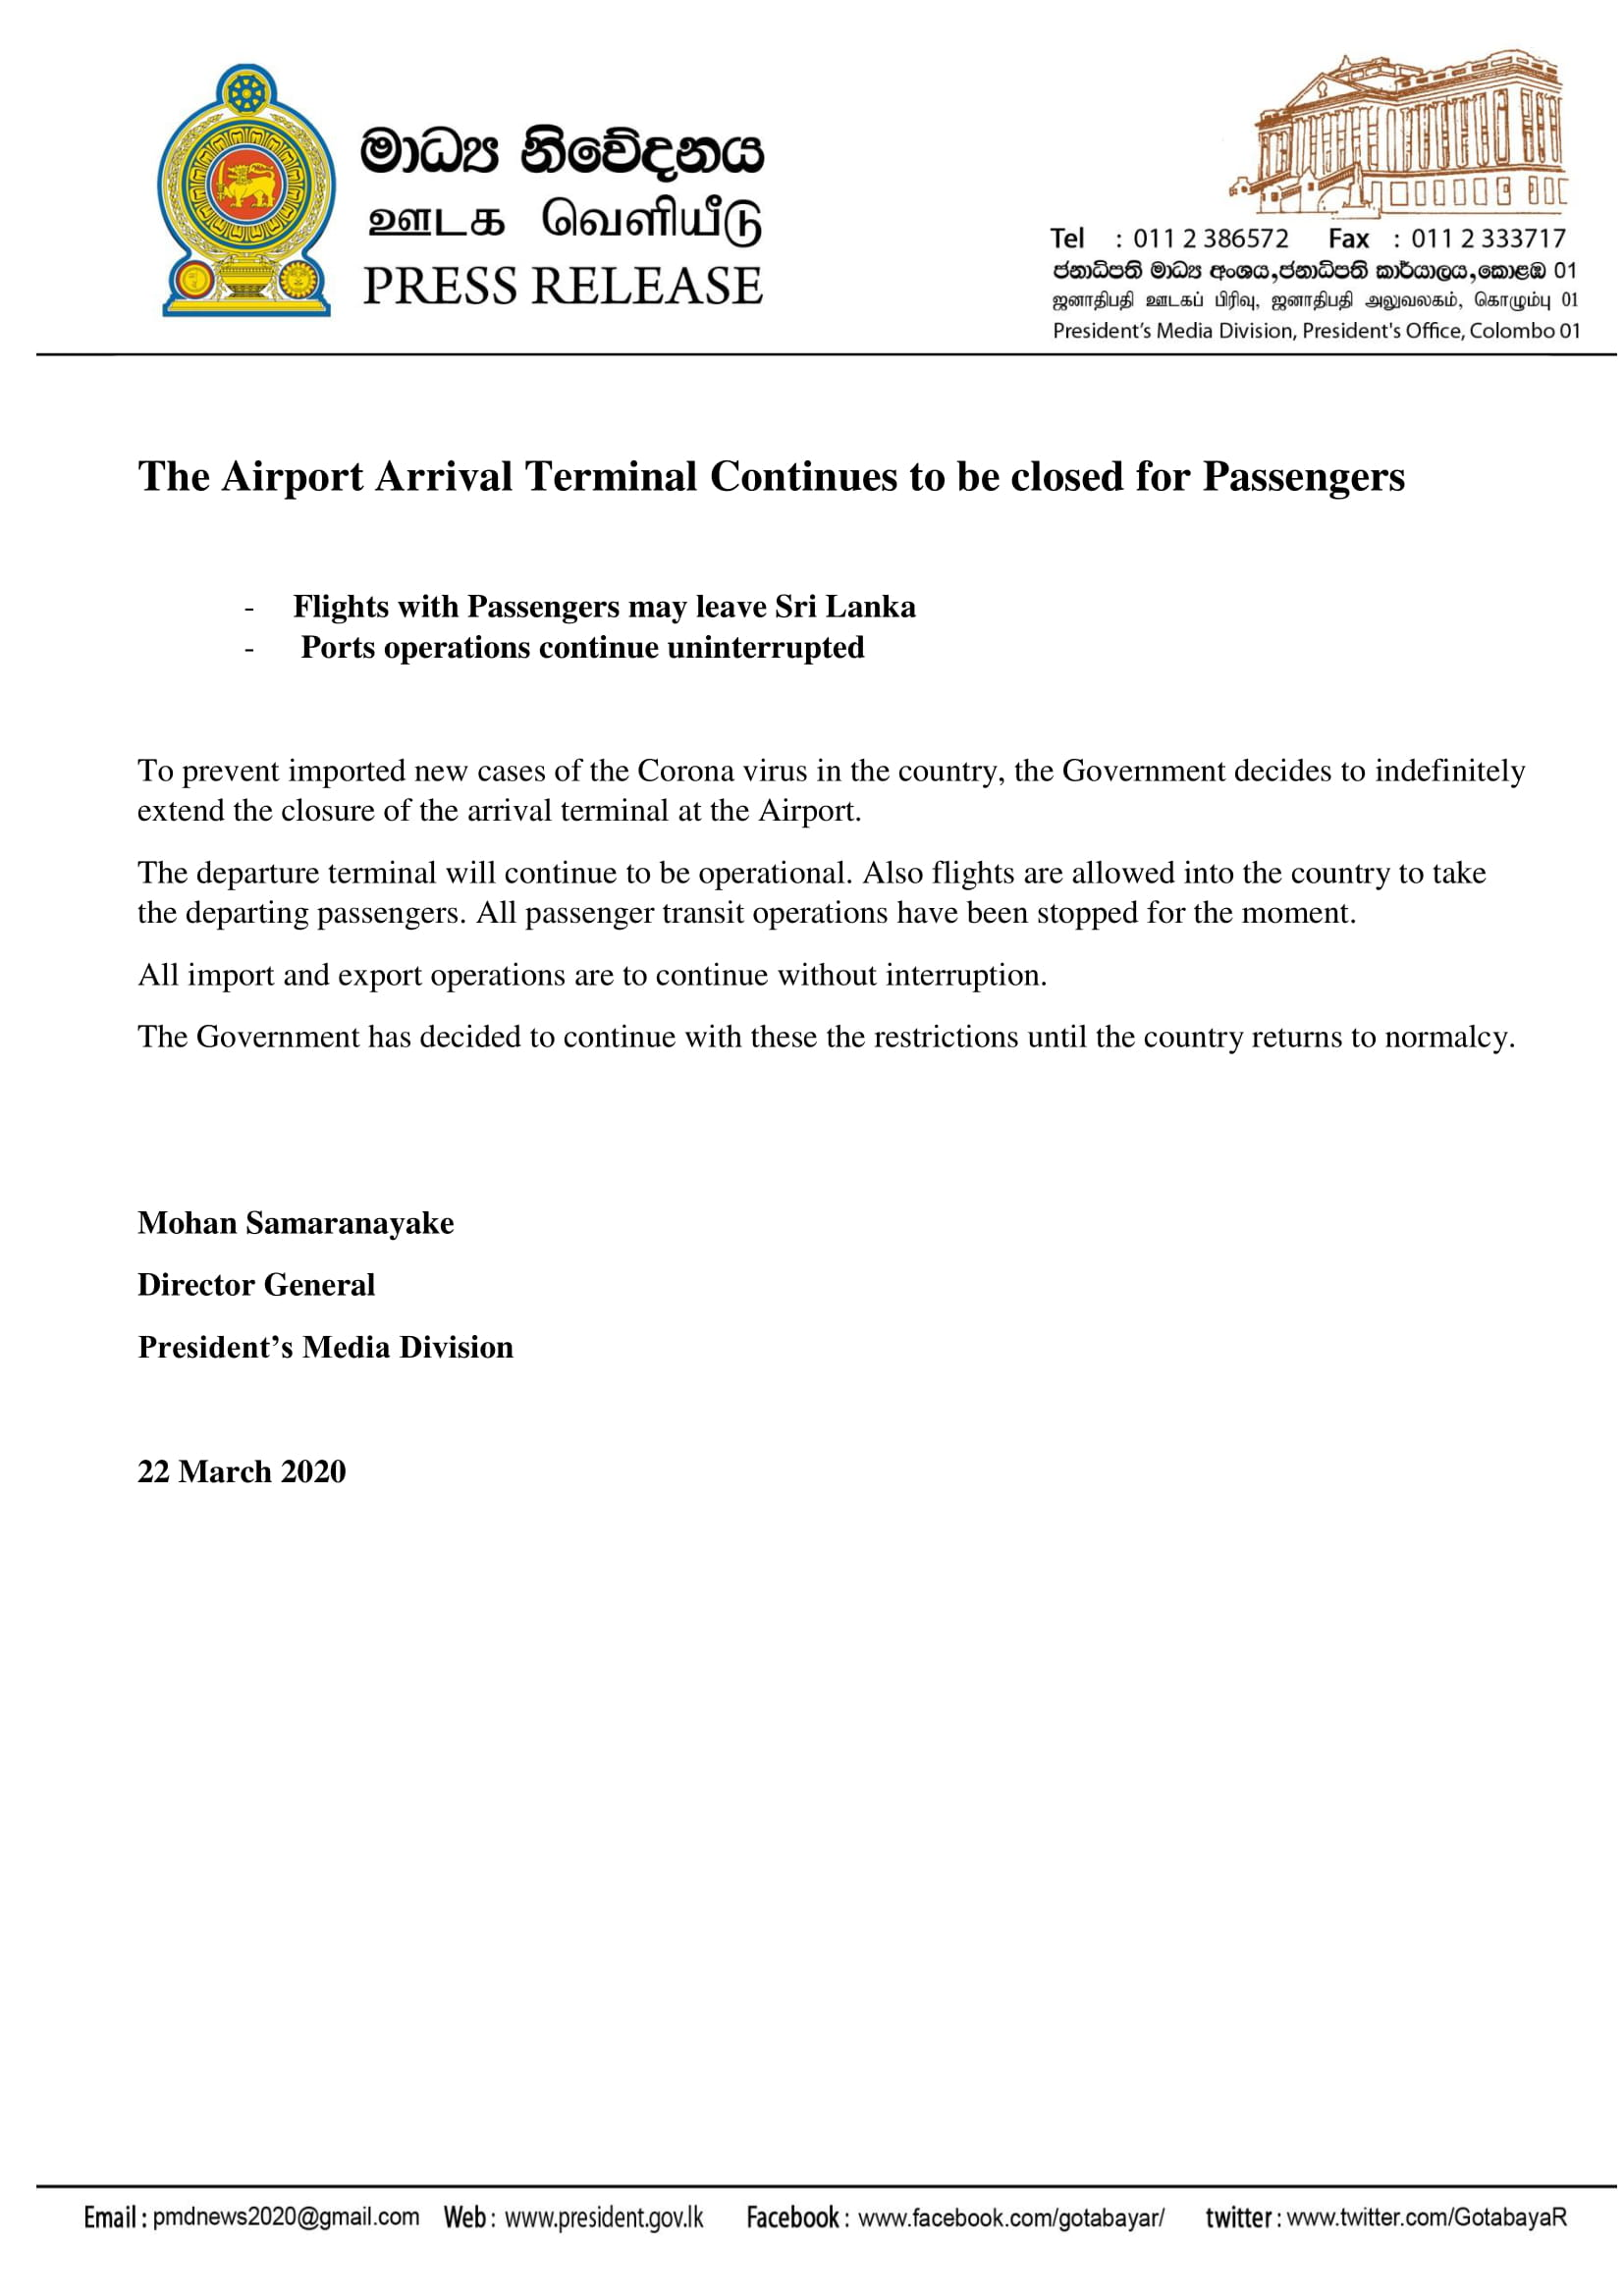 The Airport Arrival Terminal Continues to be closed for Passengers.pdf 1